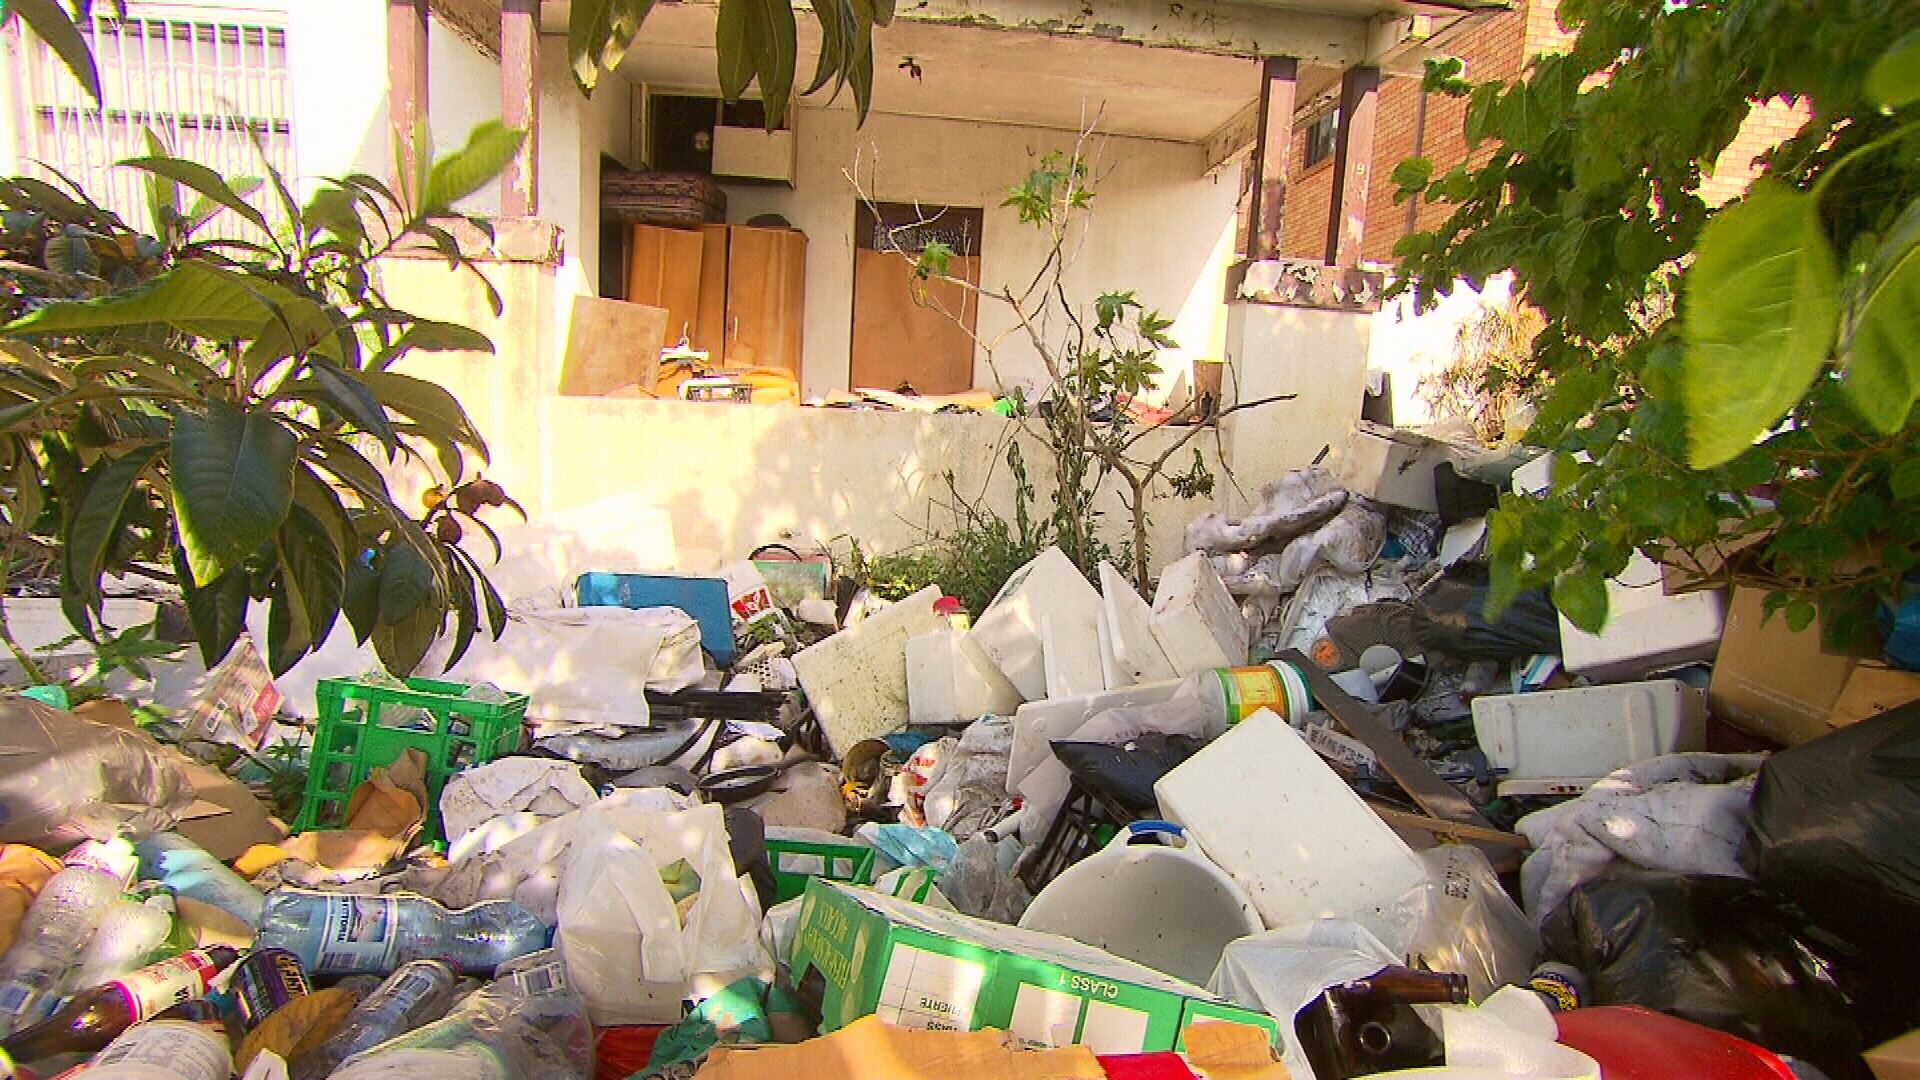 Council could win against Bondi hoarder house